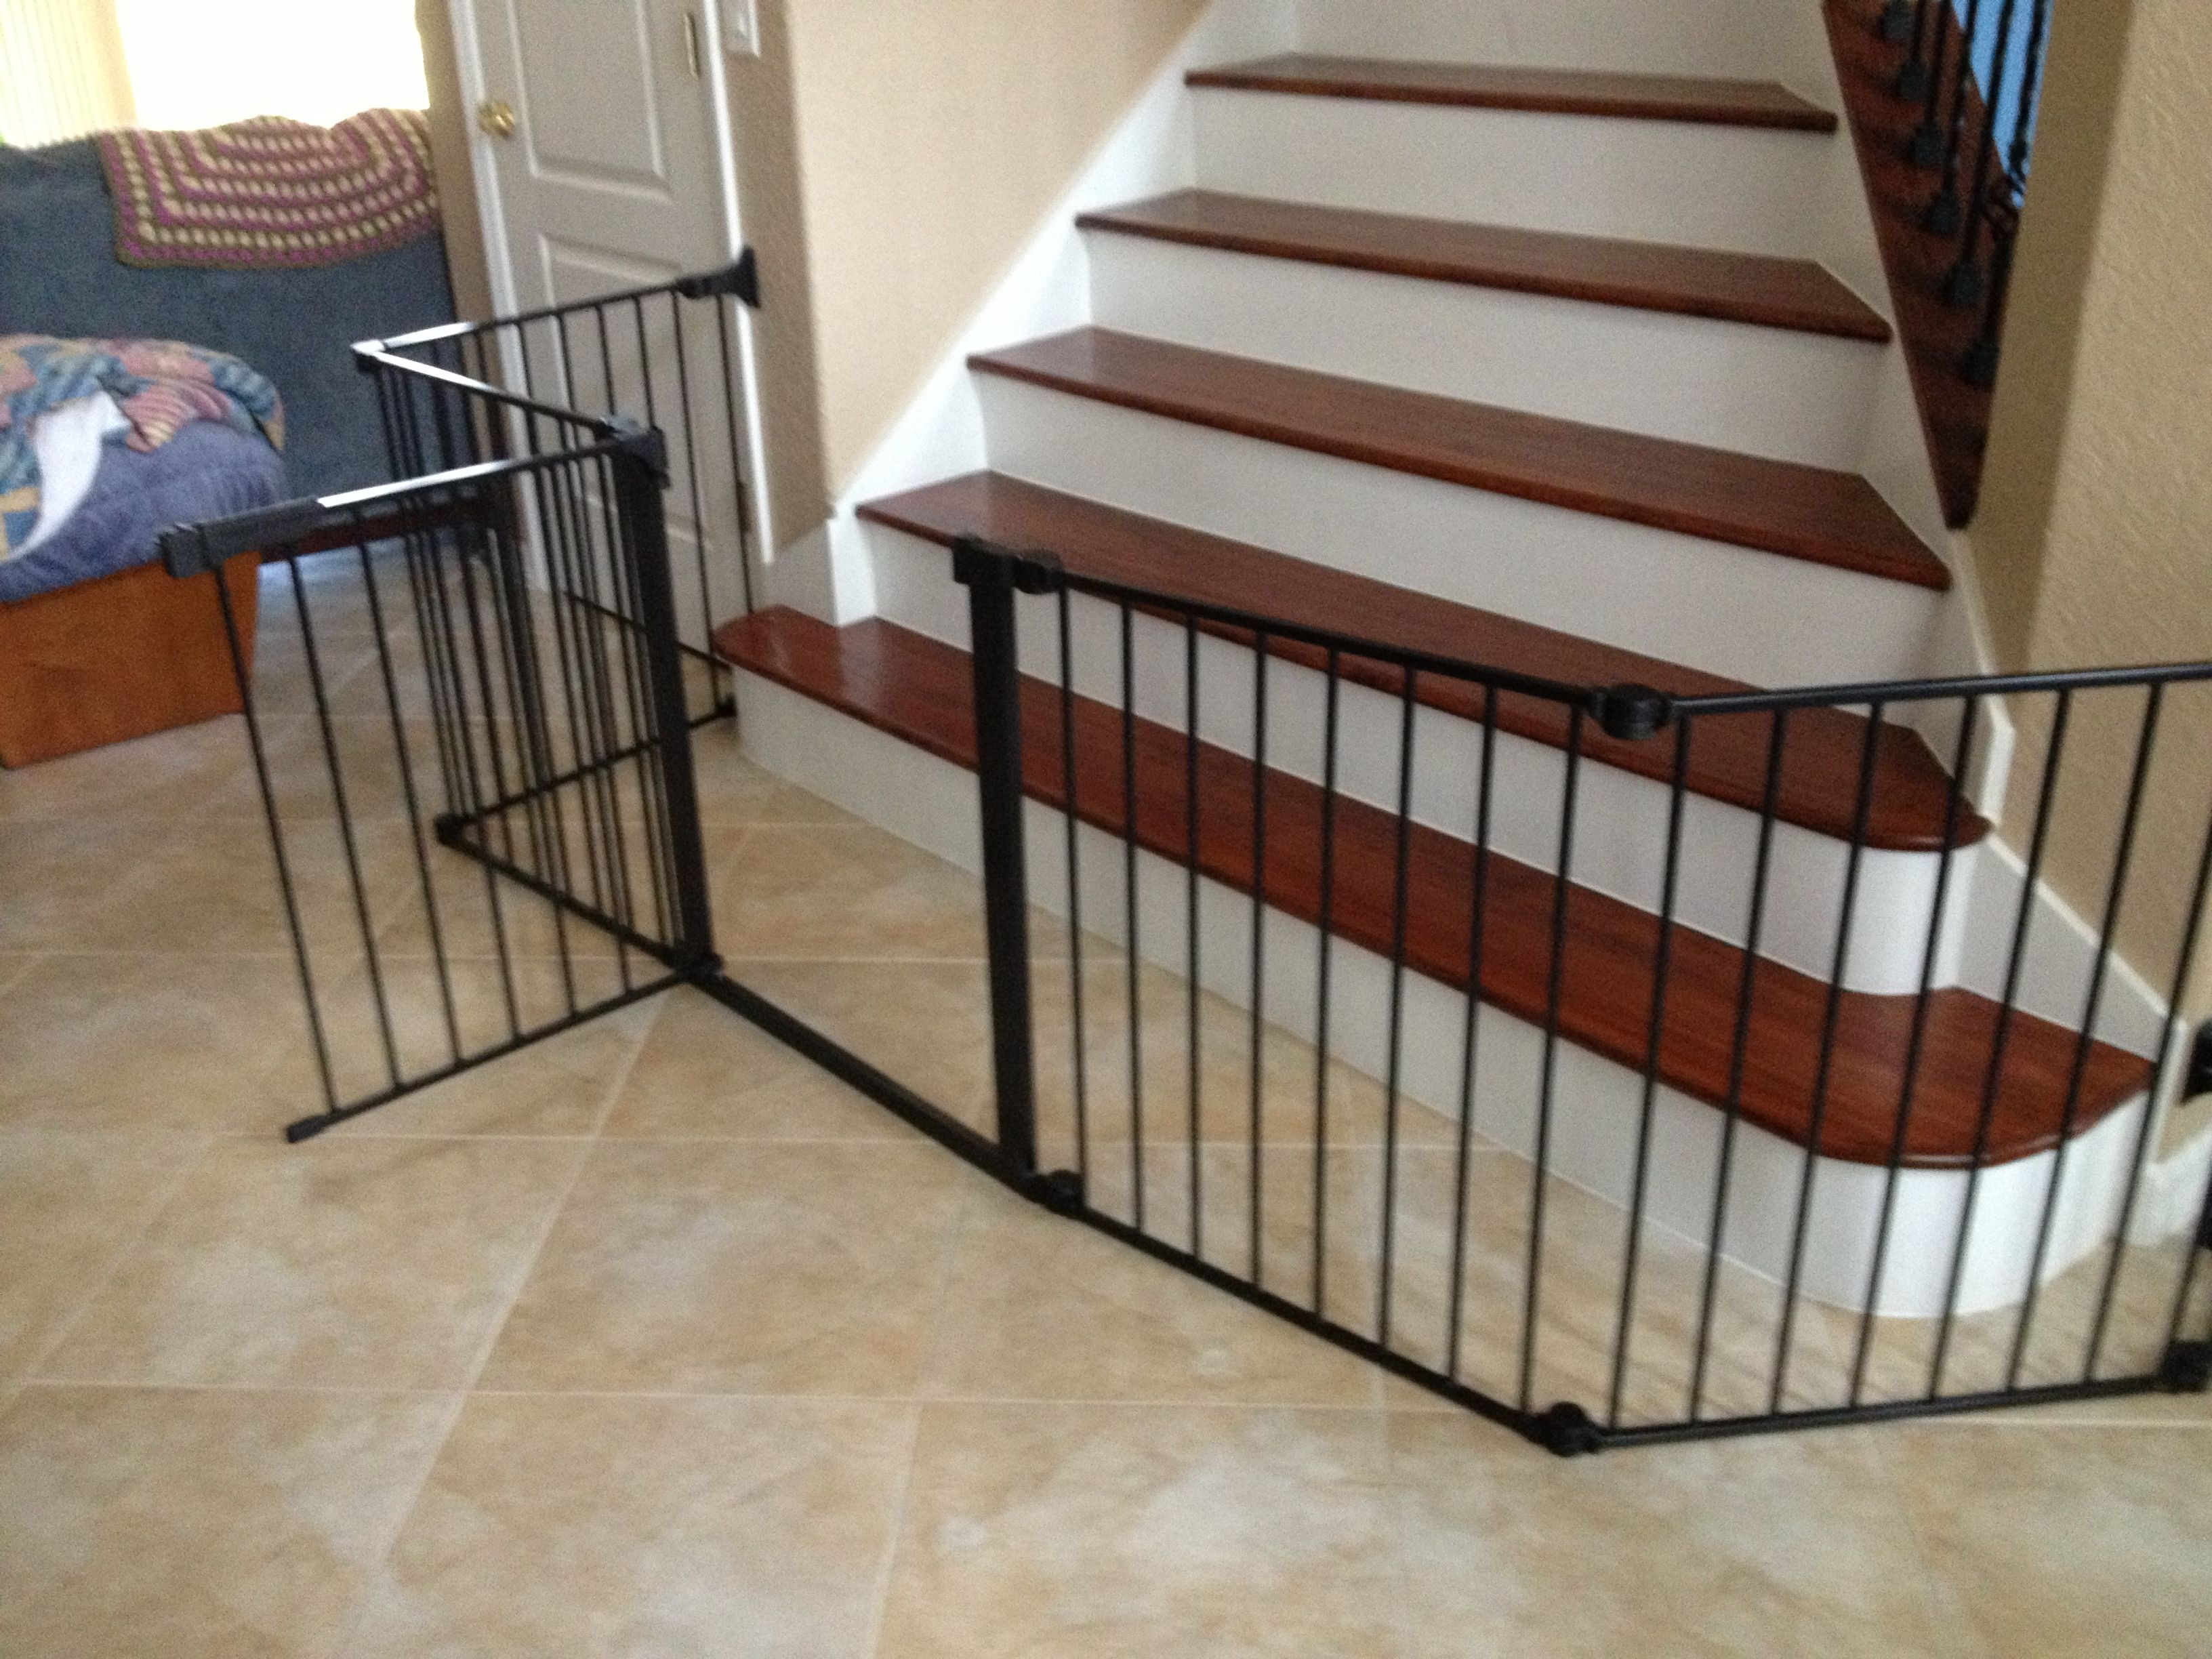 Baby Gate For Wide Opening At Bottom Of Stairs Baby Gate For Stairs Best Baby Gates Baby Gates